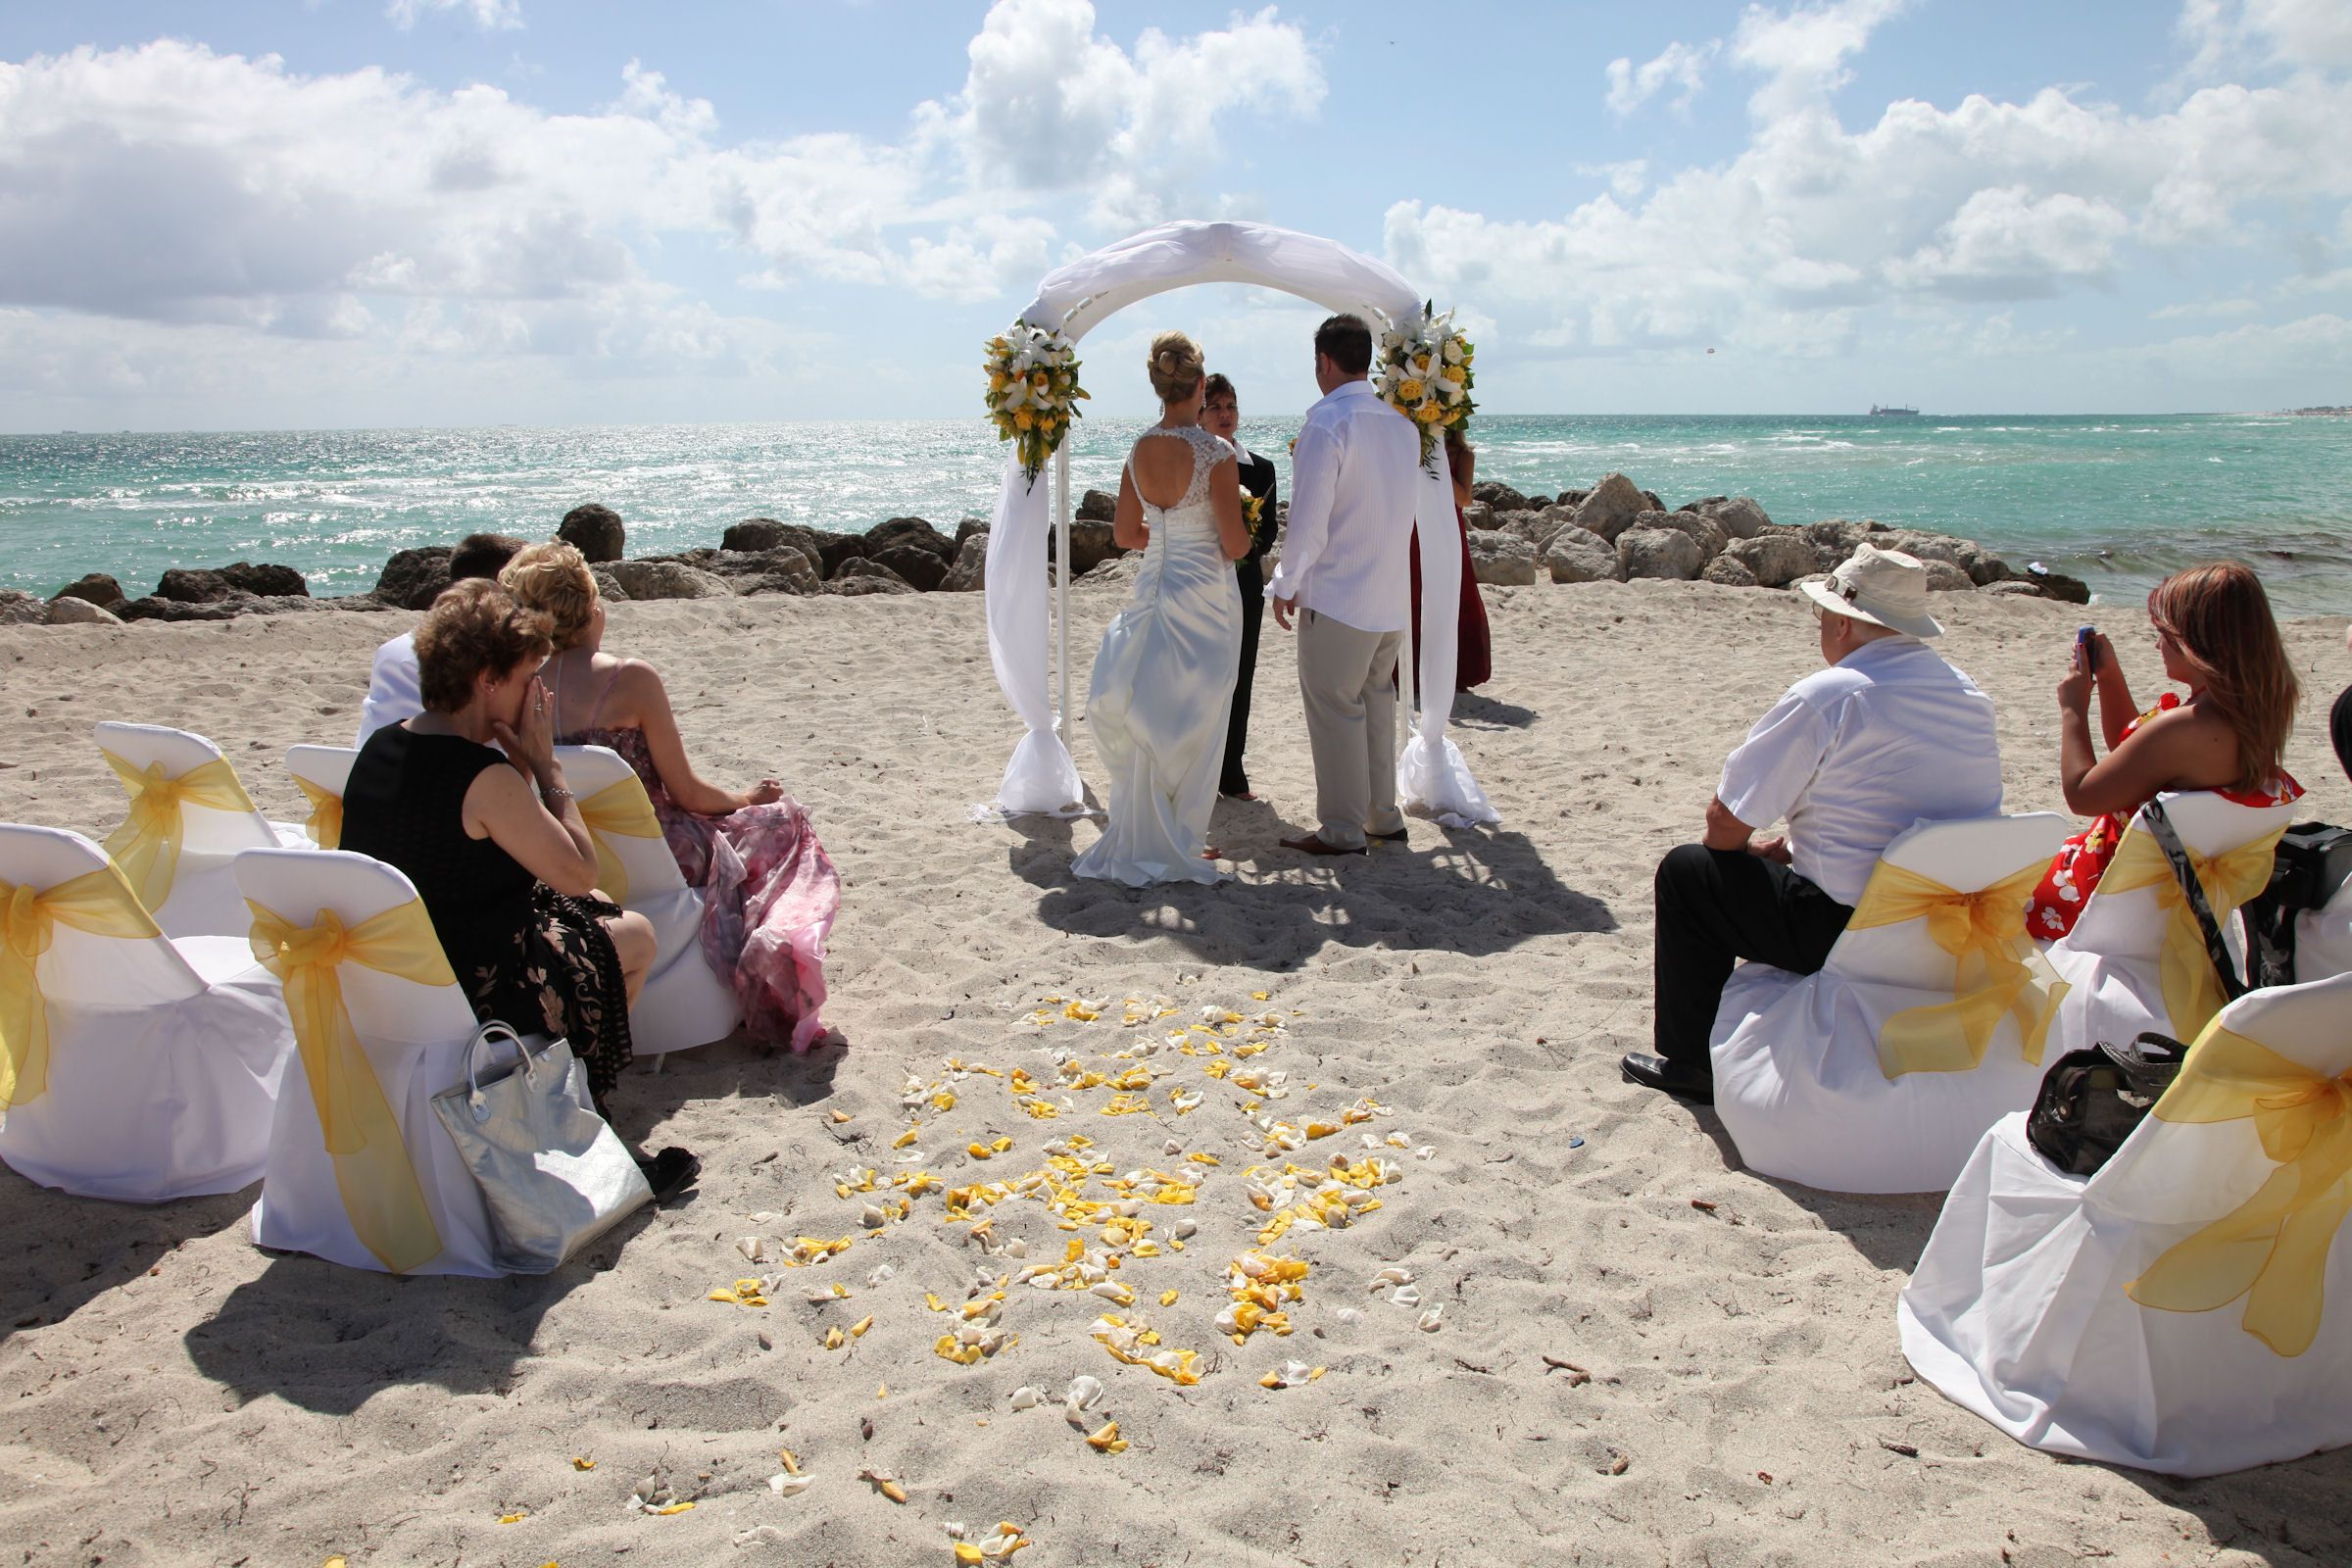 DIY Guide to a Miami Beach Wedding Info on permits and so on